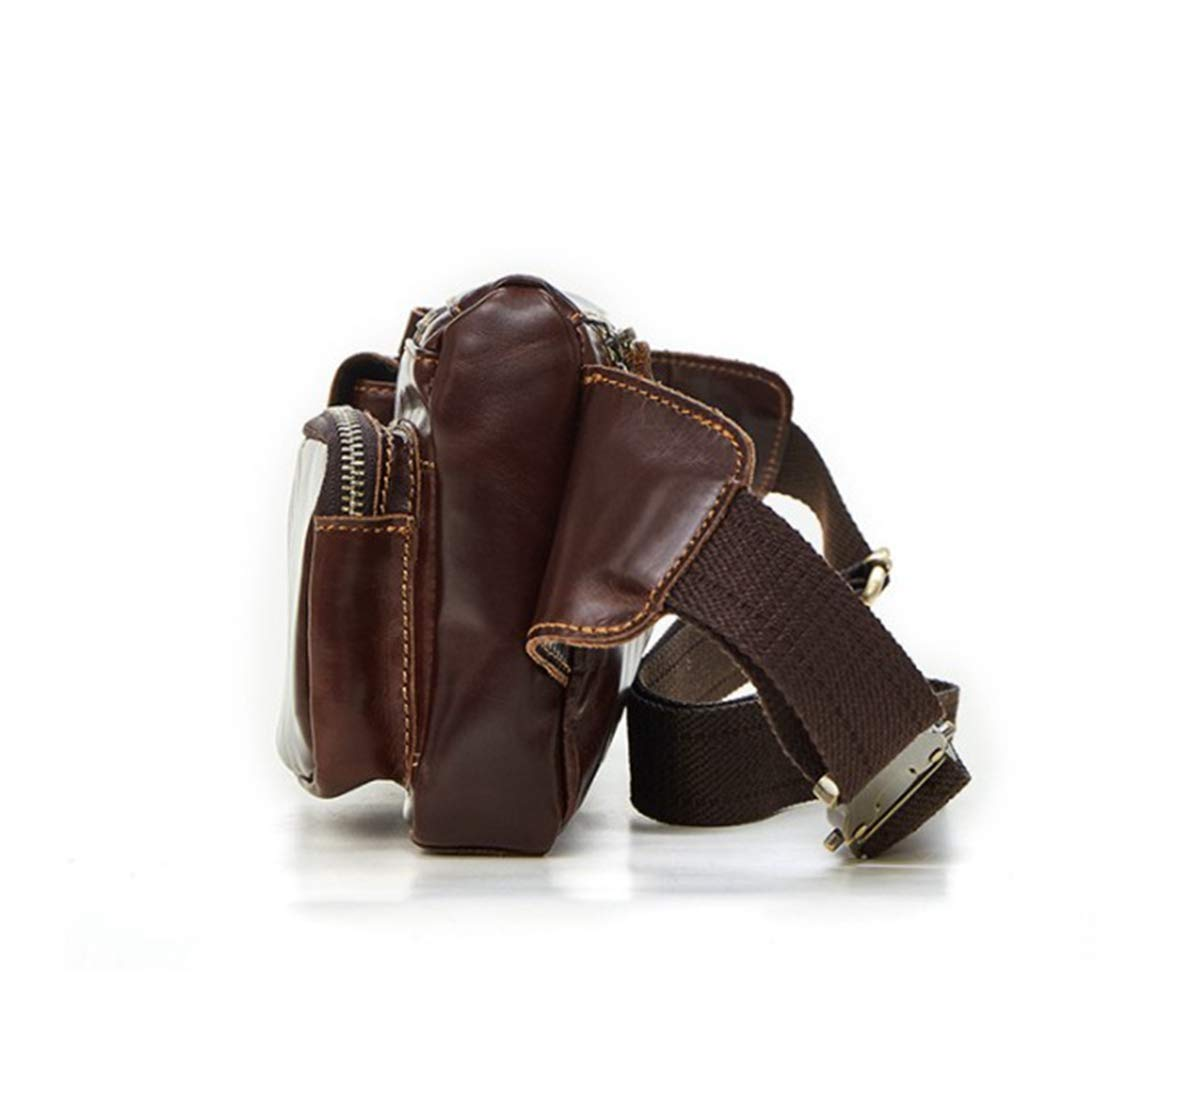 Adams chad Large Brown Genuine Lambskin Leather Fanny Pack Waist Bag with Cell Phone Pouch Color : Coffee Color